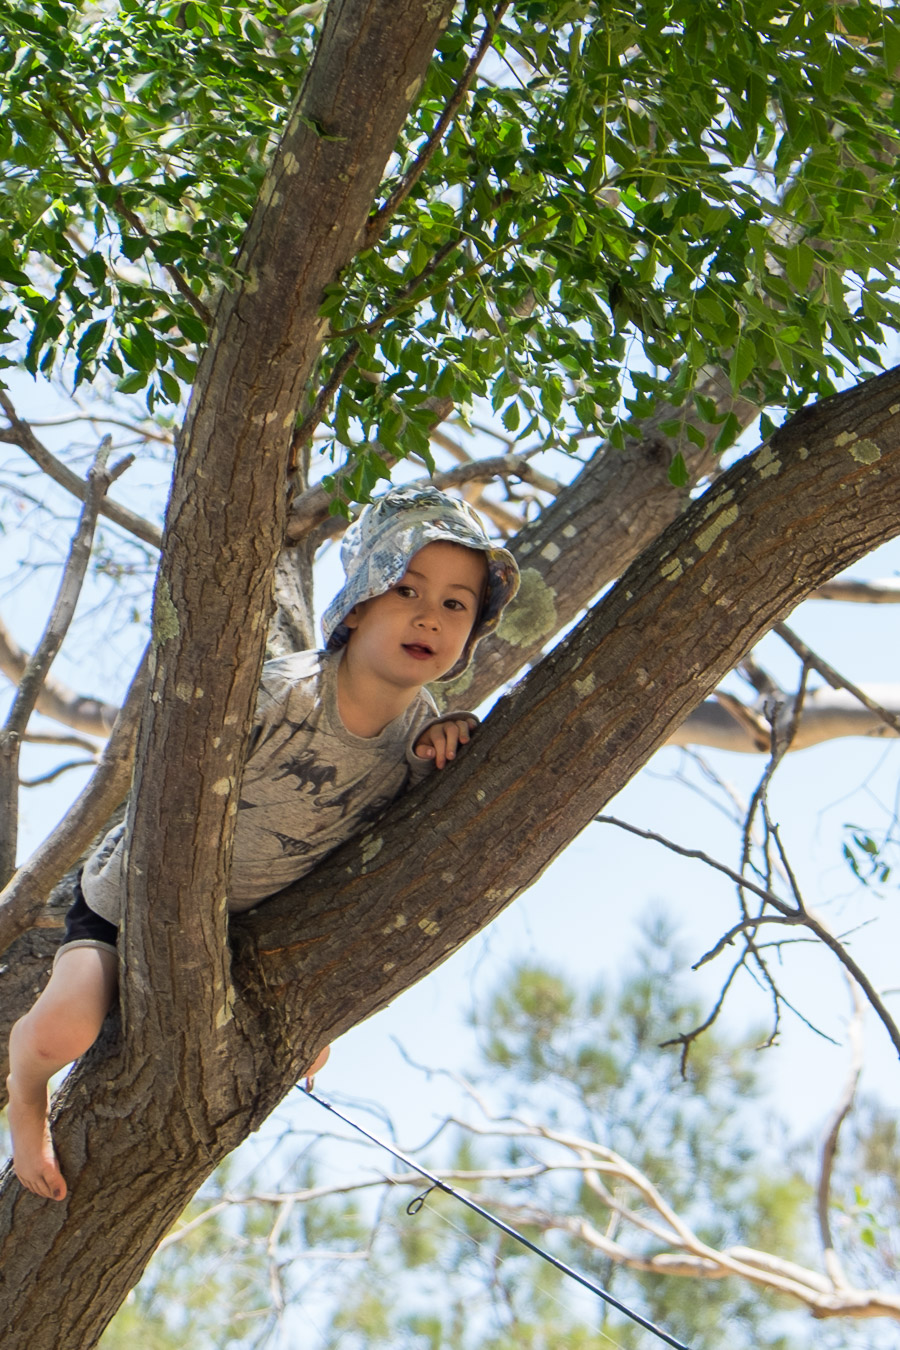 Caleb in the tree